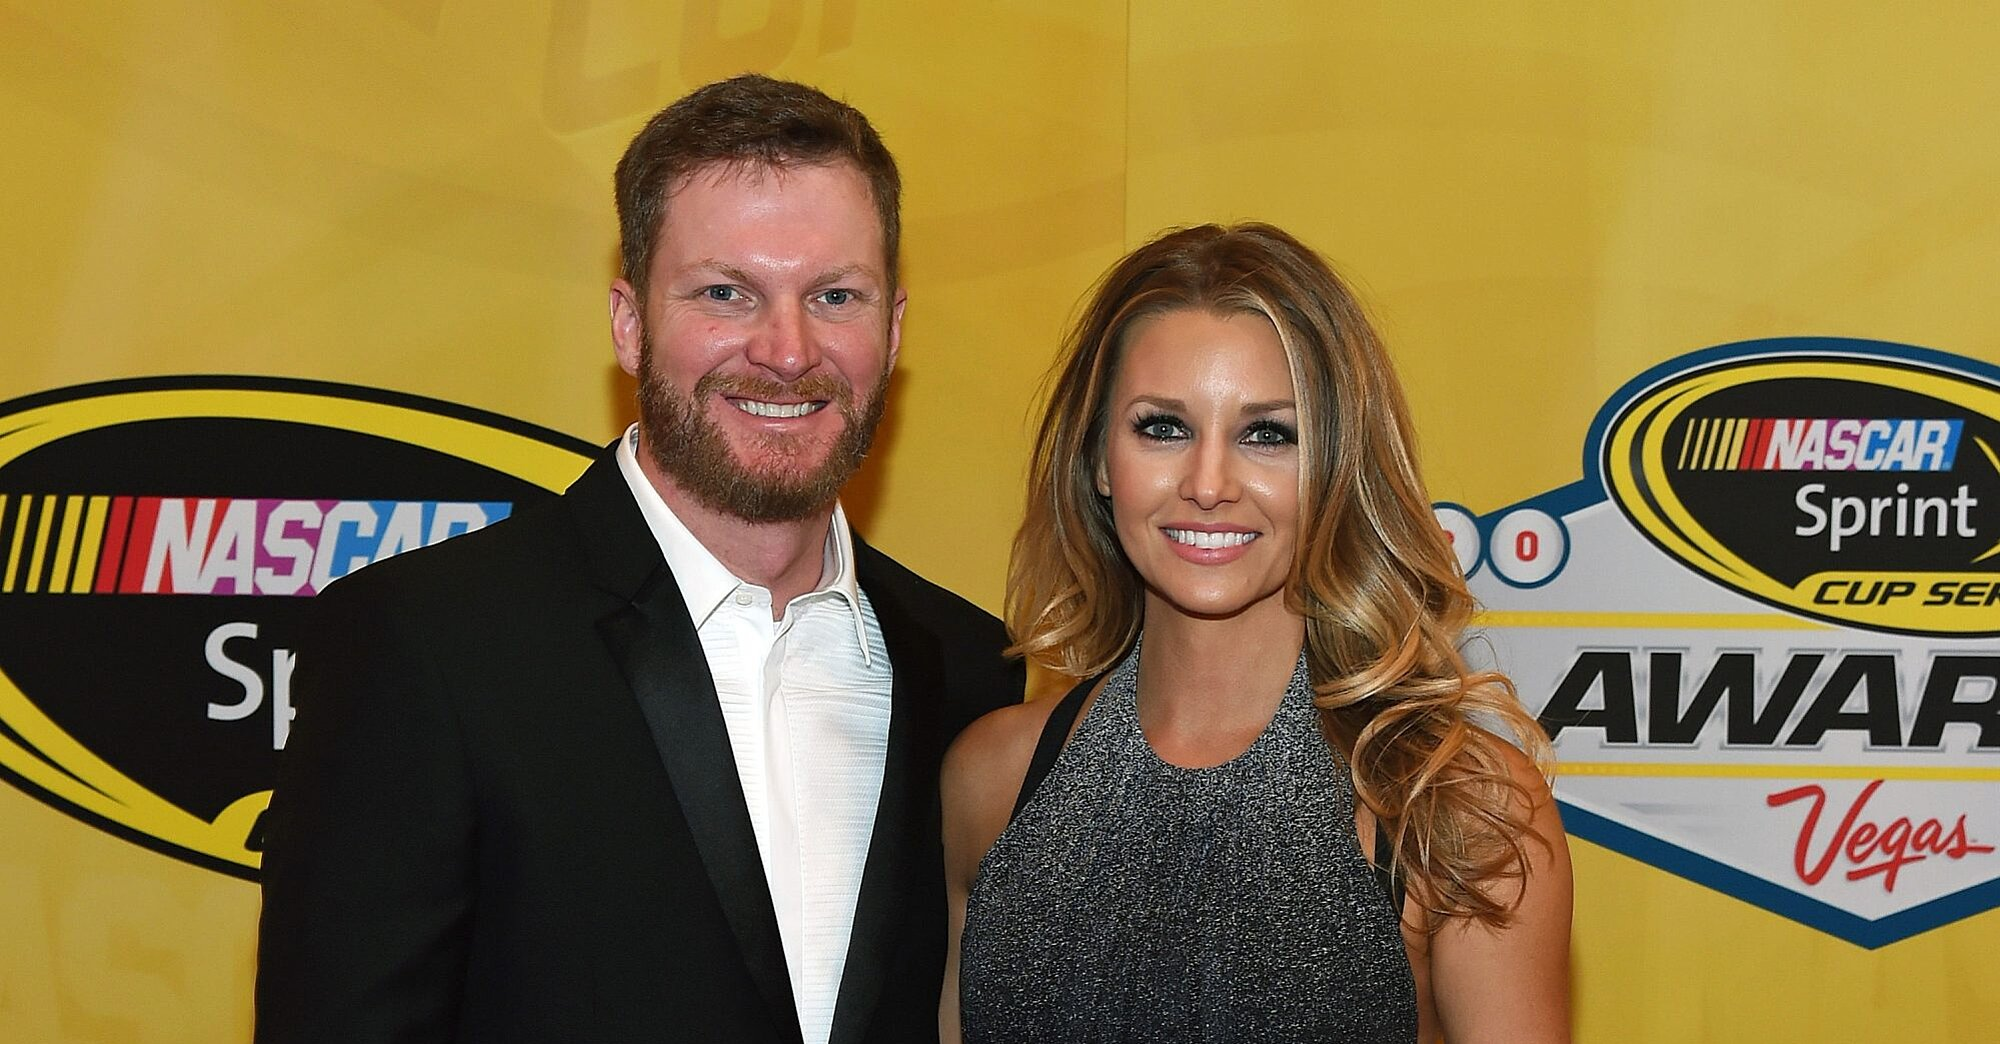 Dale Earnhardt Jr. and Wife Amy Welcome 'Healthy Little Baby Girl'